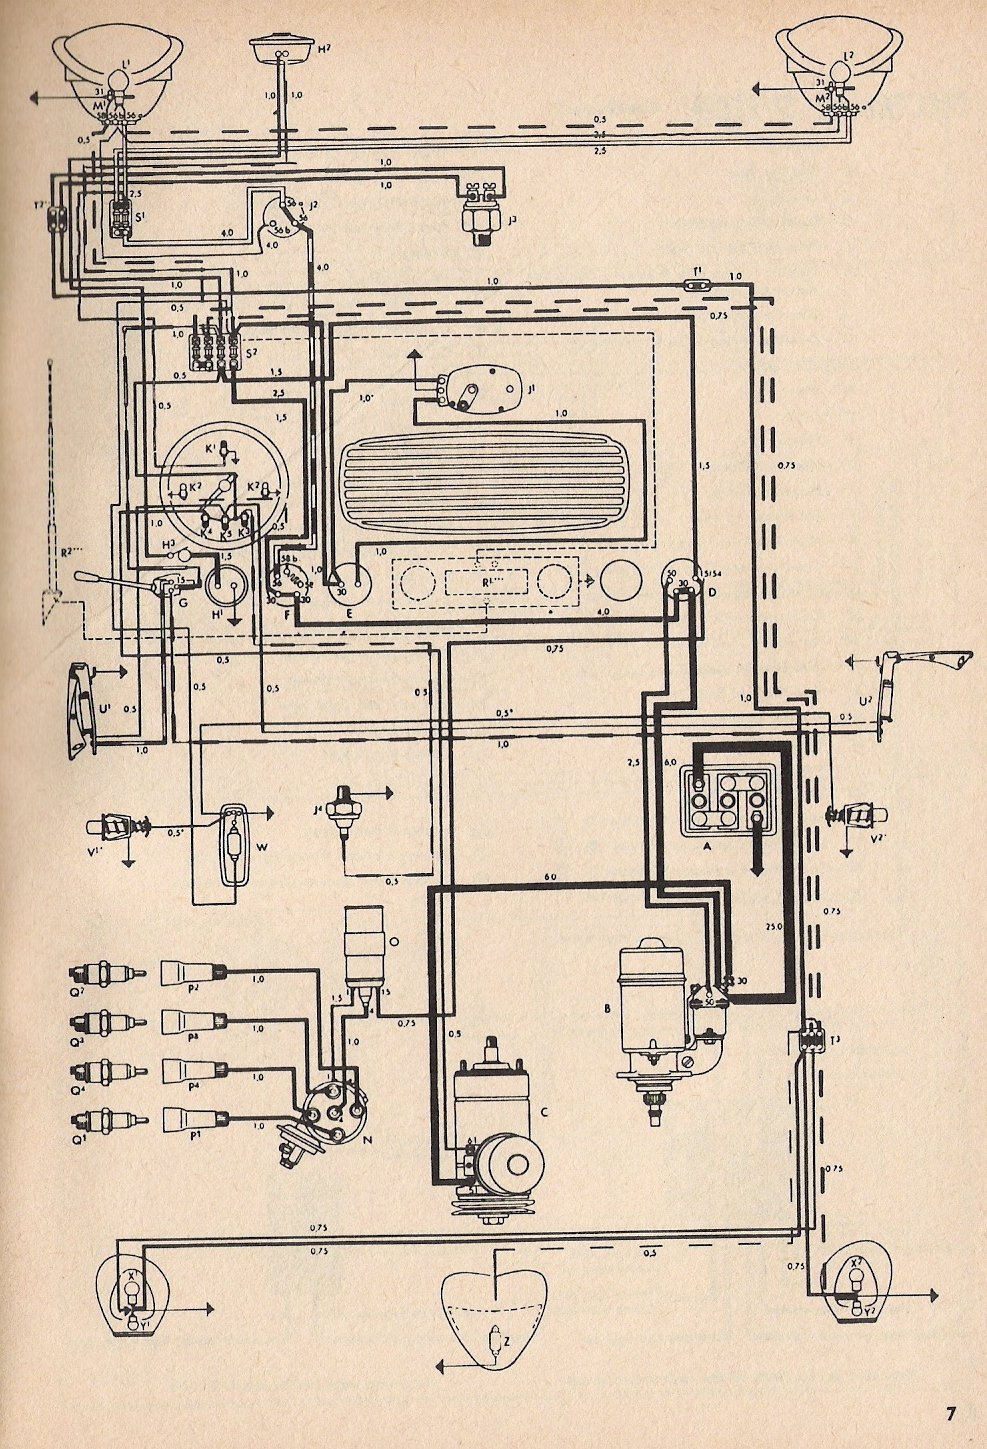 bug_54 vw wiring harness diagram cj7 wiring harness diagram \u2022 wiring 1969 vw bug wiring harness at reclaimingppi.co